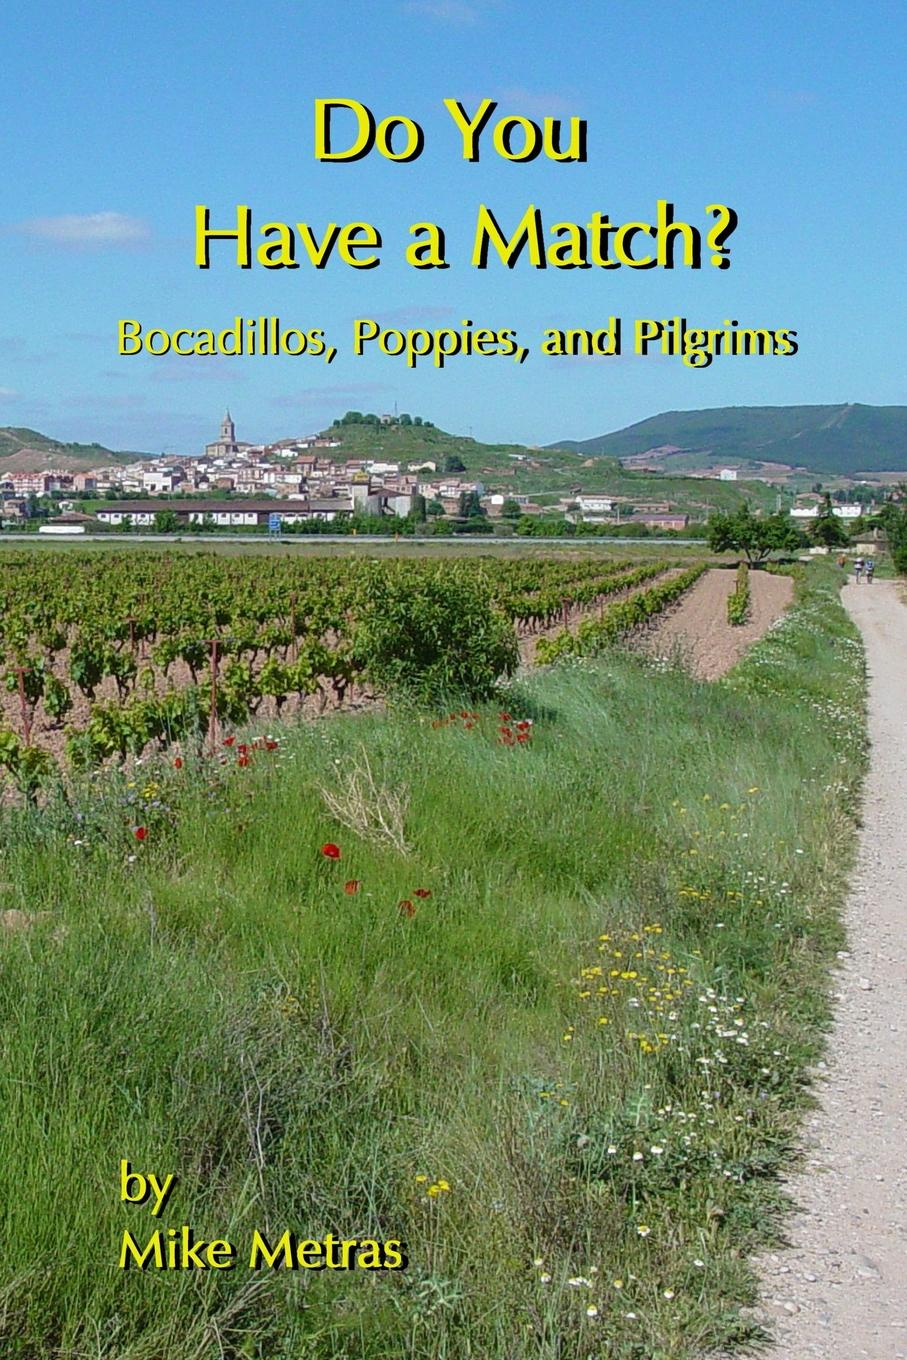 Mike Metras Do You Have a Match. Bocadillos, Poppies, and Pilgrims